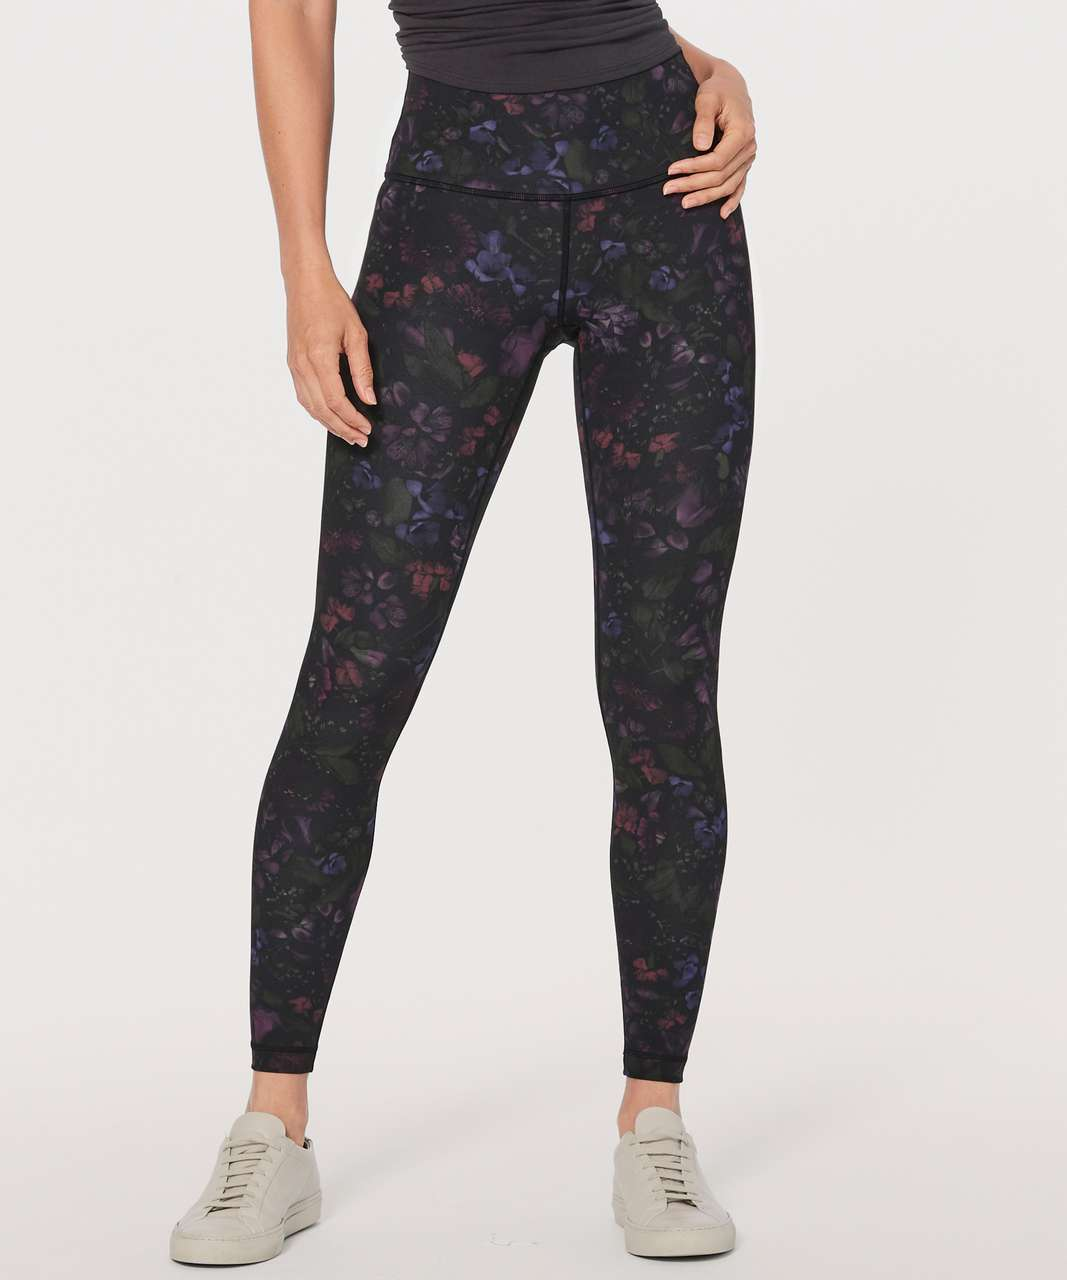 ab8da7f0f Lululemon Wunder Under Hi-Rise Tight (Full-On Luxtreme 28